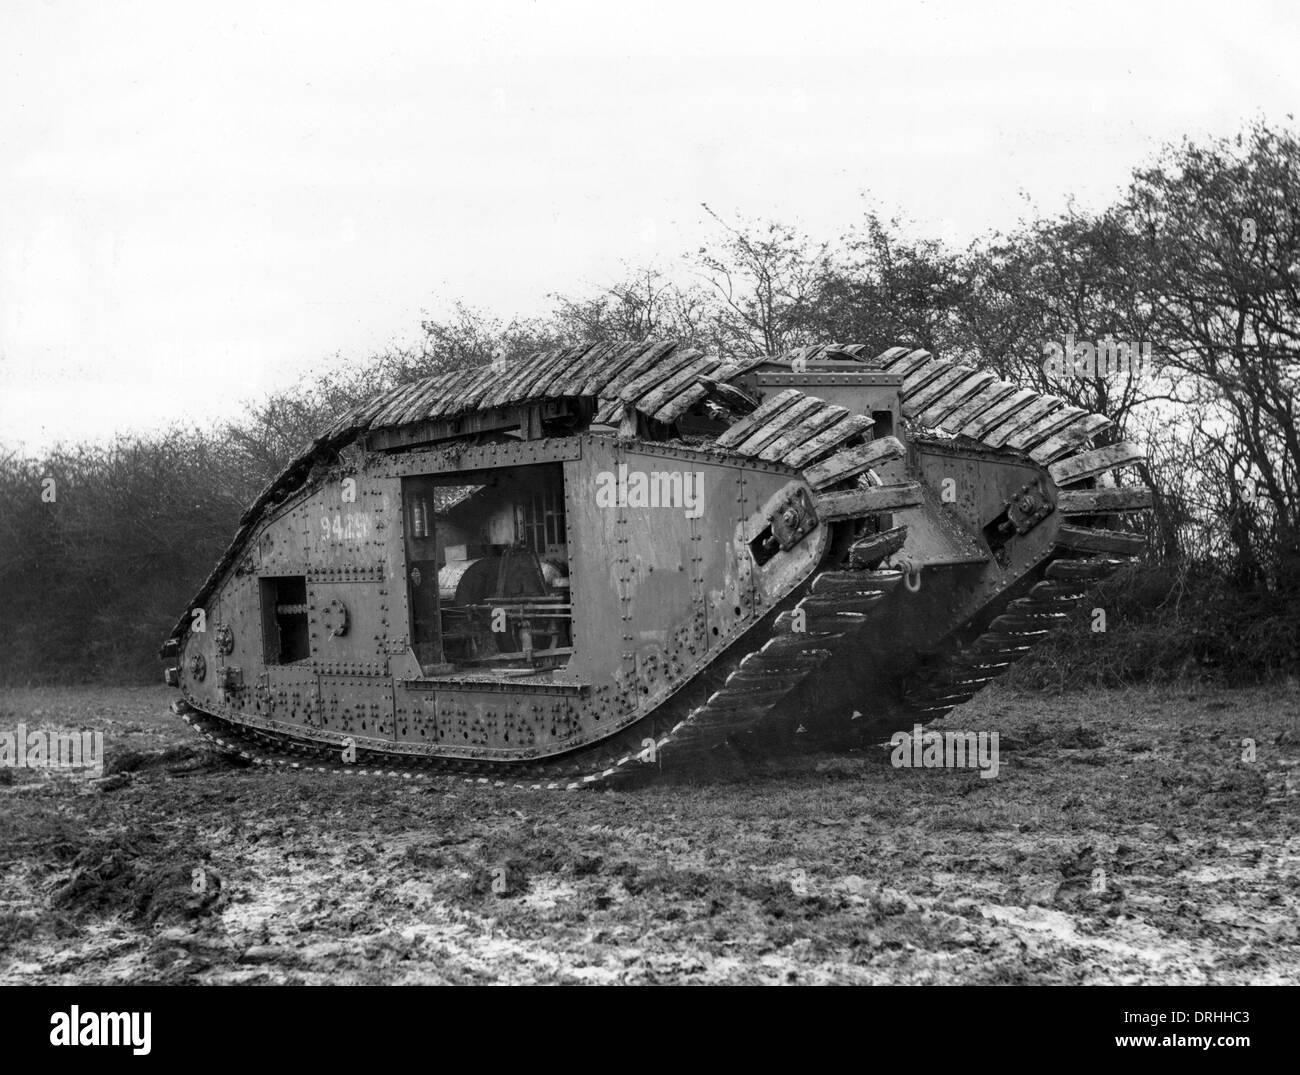 experiment-with-british-mark-v-tank-ww1-